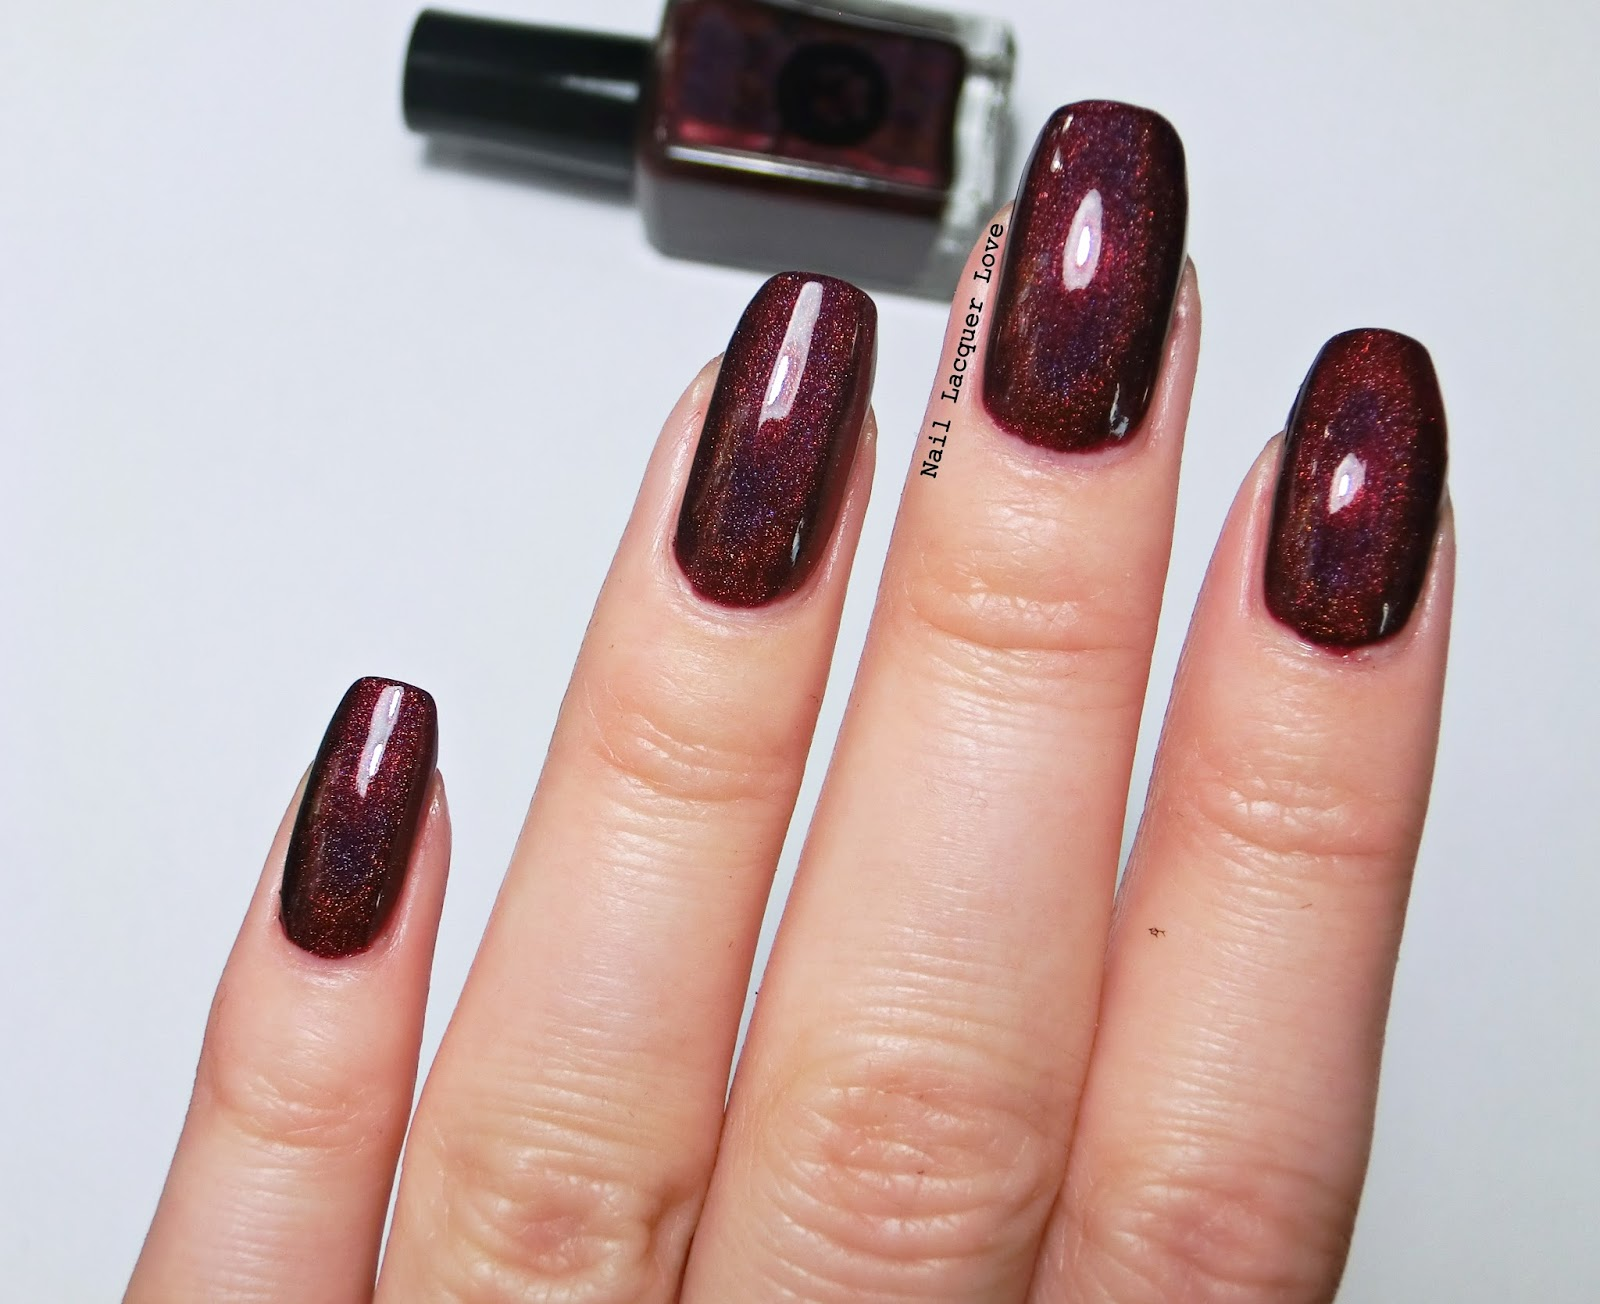 Nail Lacquer Love: Bear Pawlish In Love With the Bad